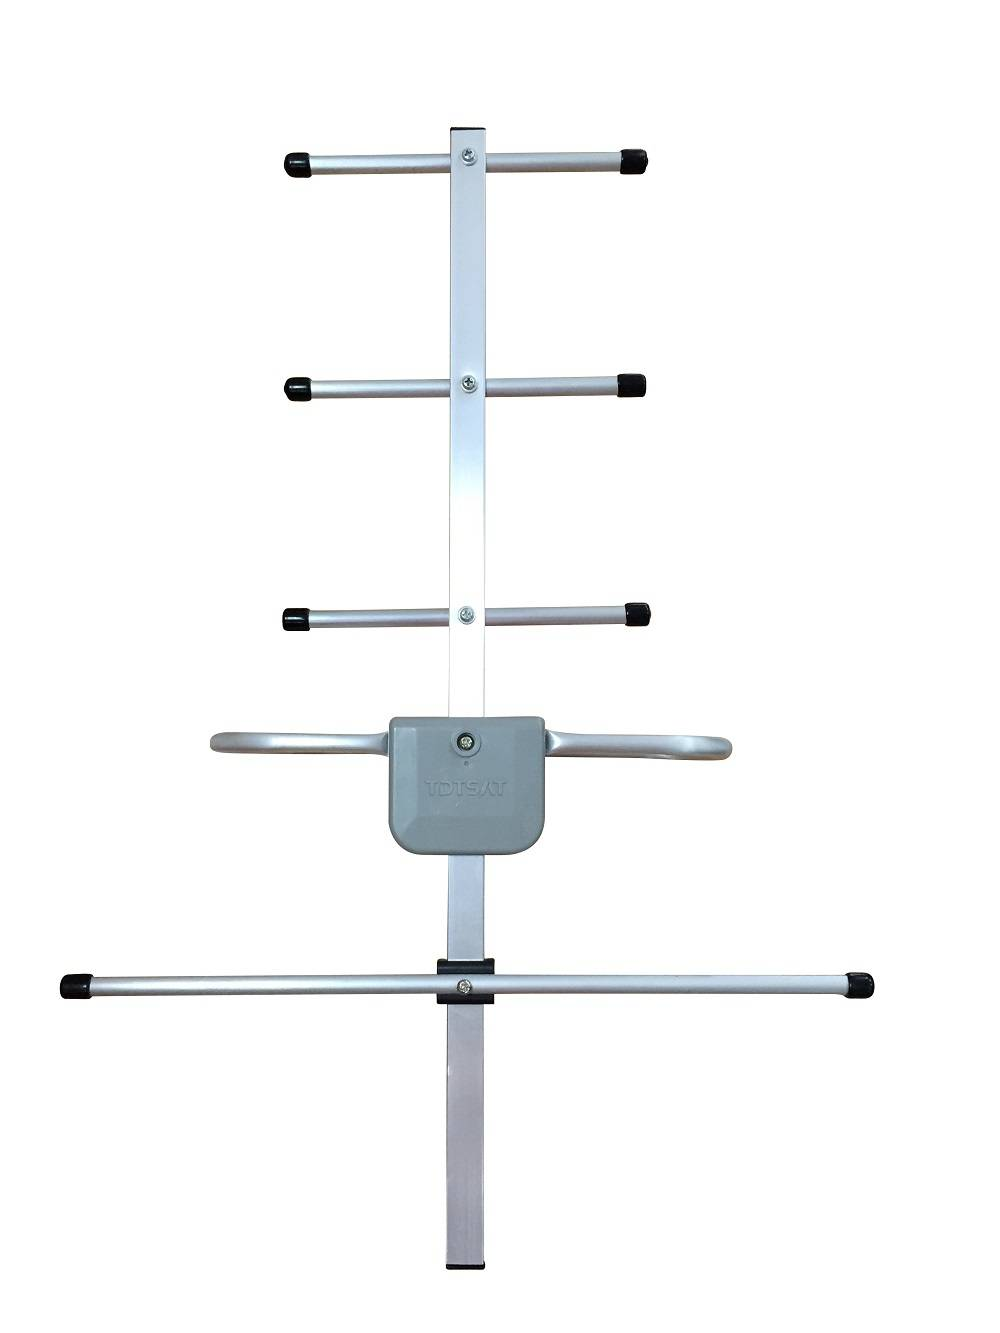 Ultra High Frequency outdoor digital yagi antenna of all-weather work and 5 units